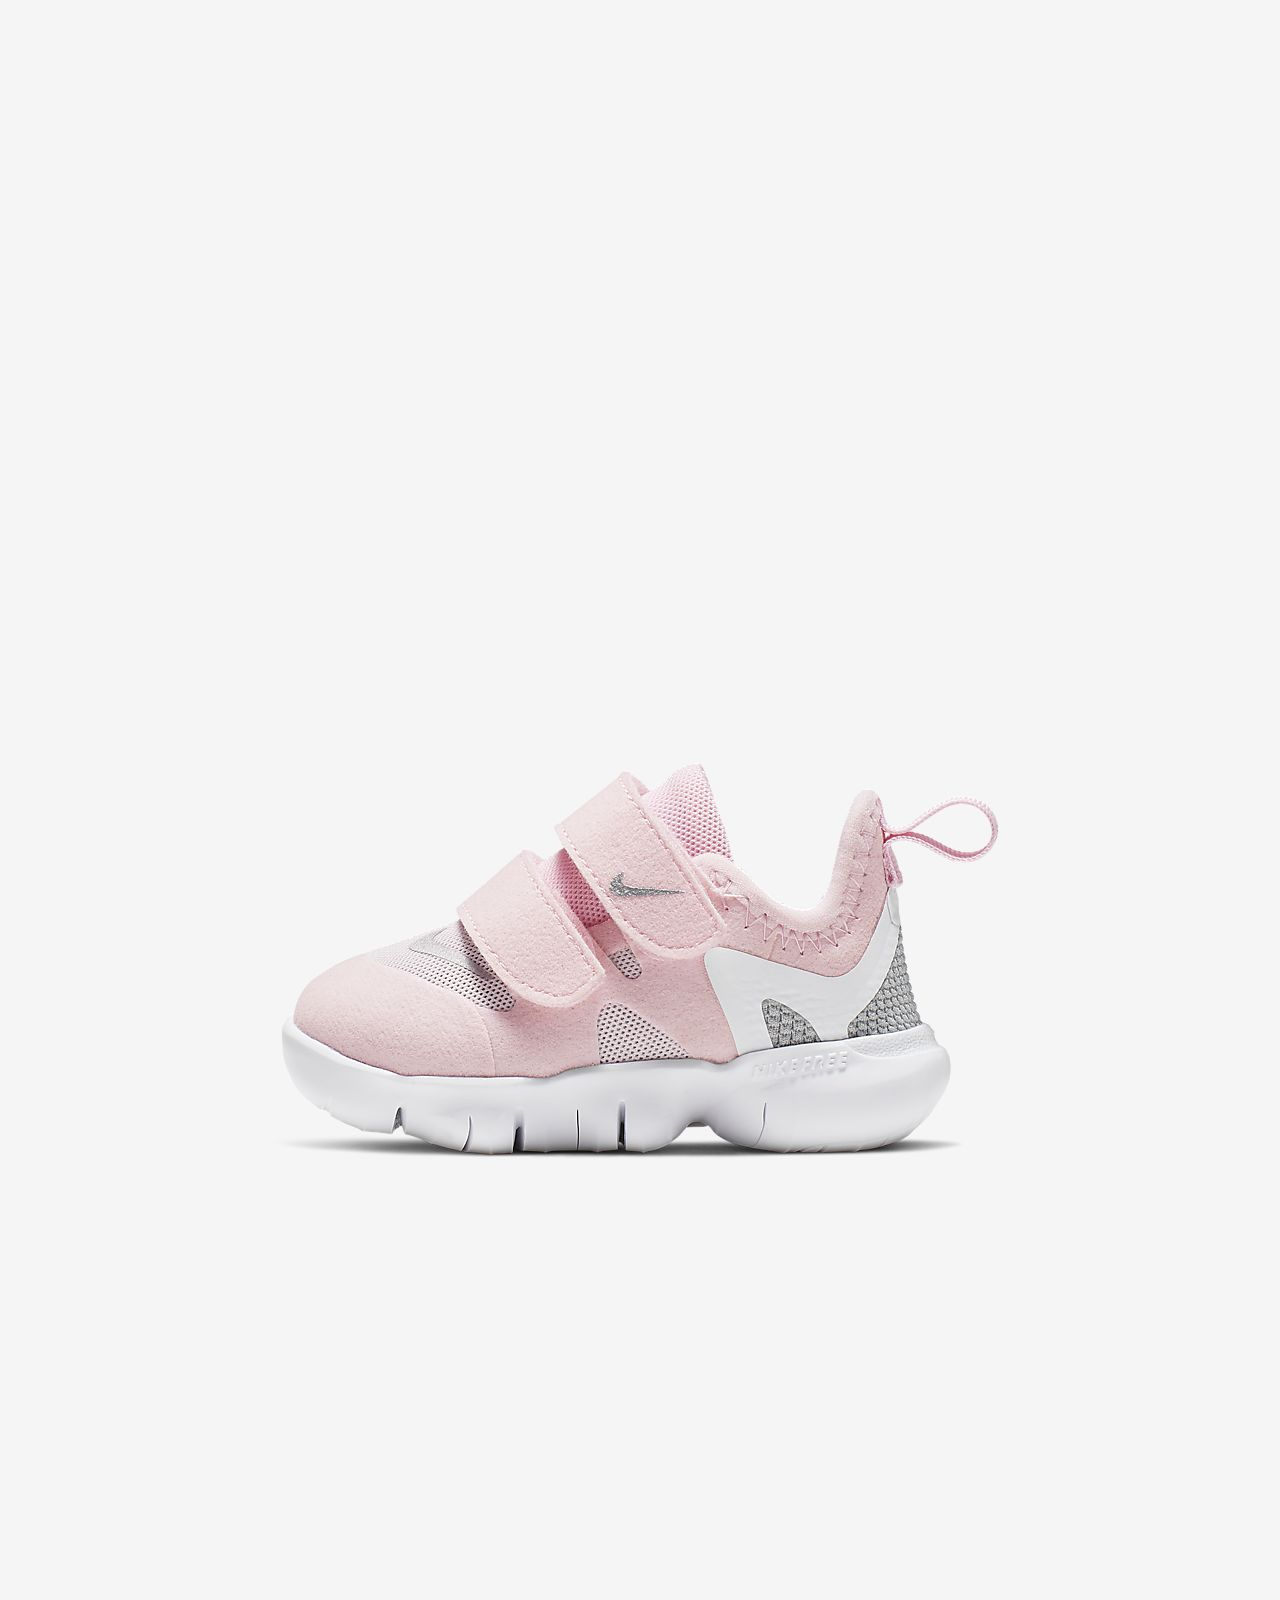 Nike Free RN 5.0 Baby & Toddler Shoe